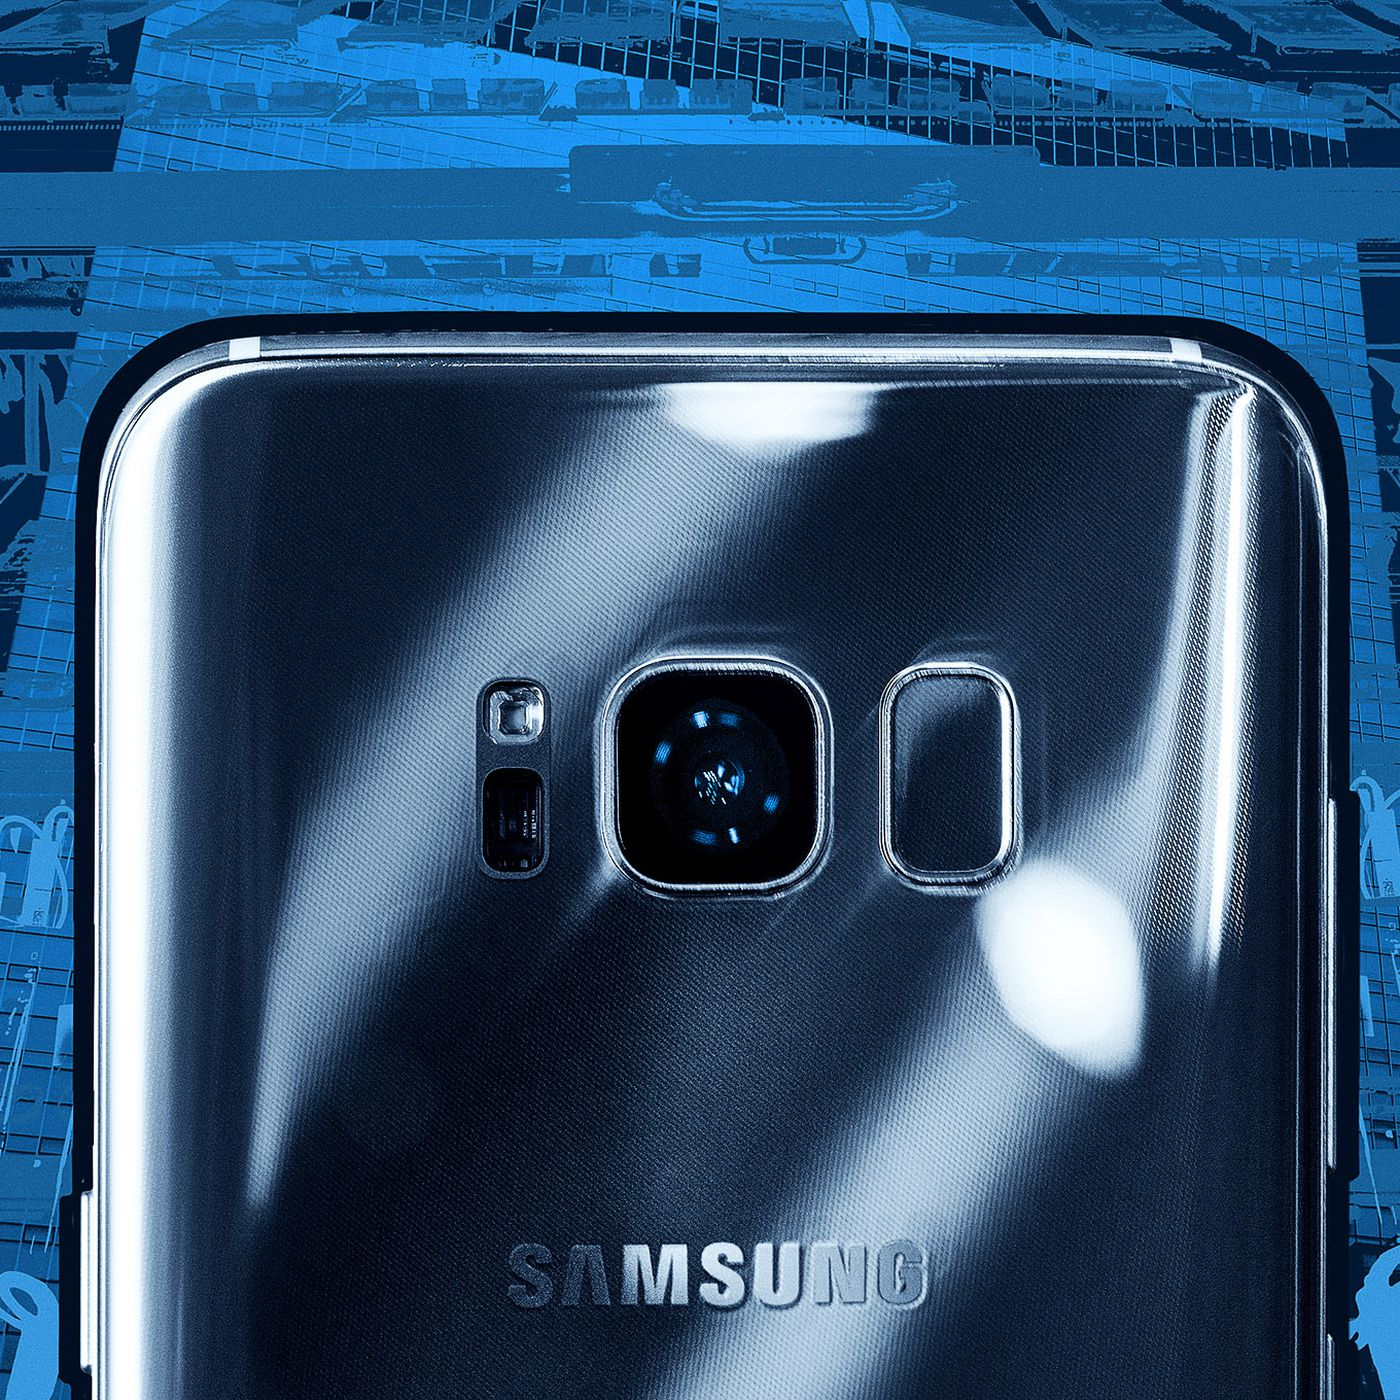 After the smoke clears: inside Samsung's quest for redemption - The